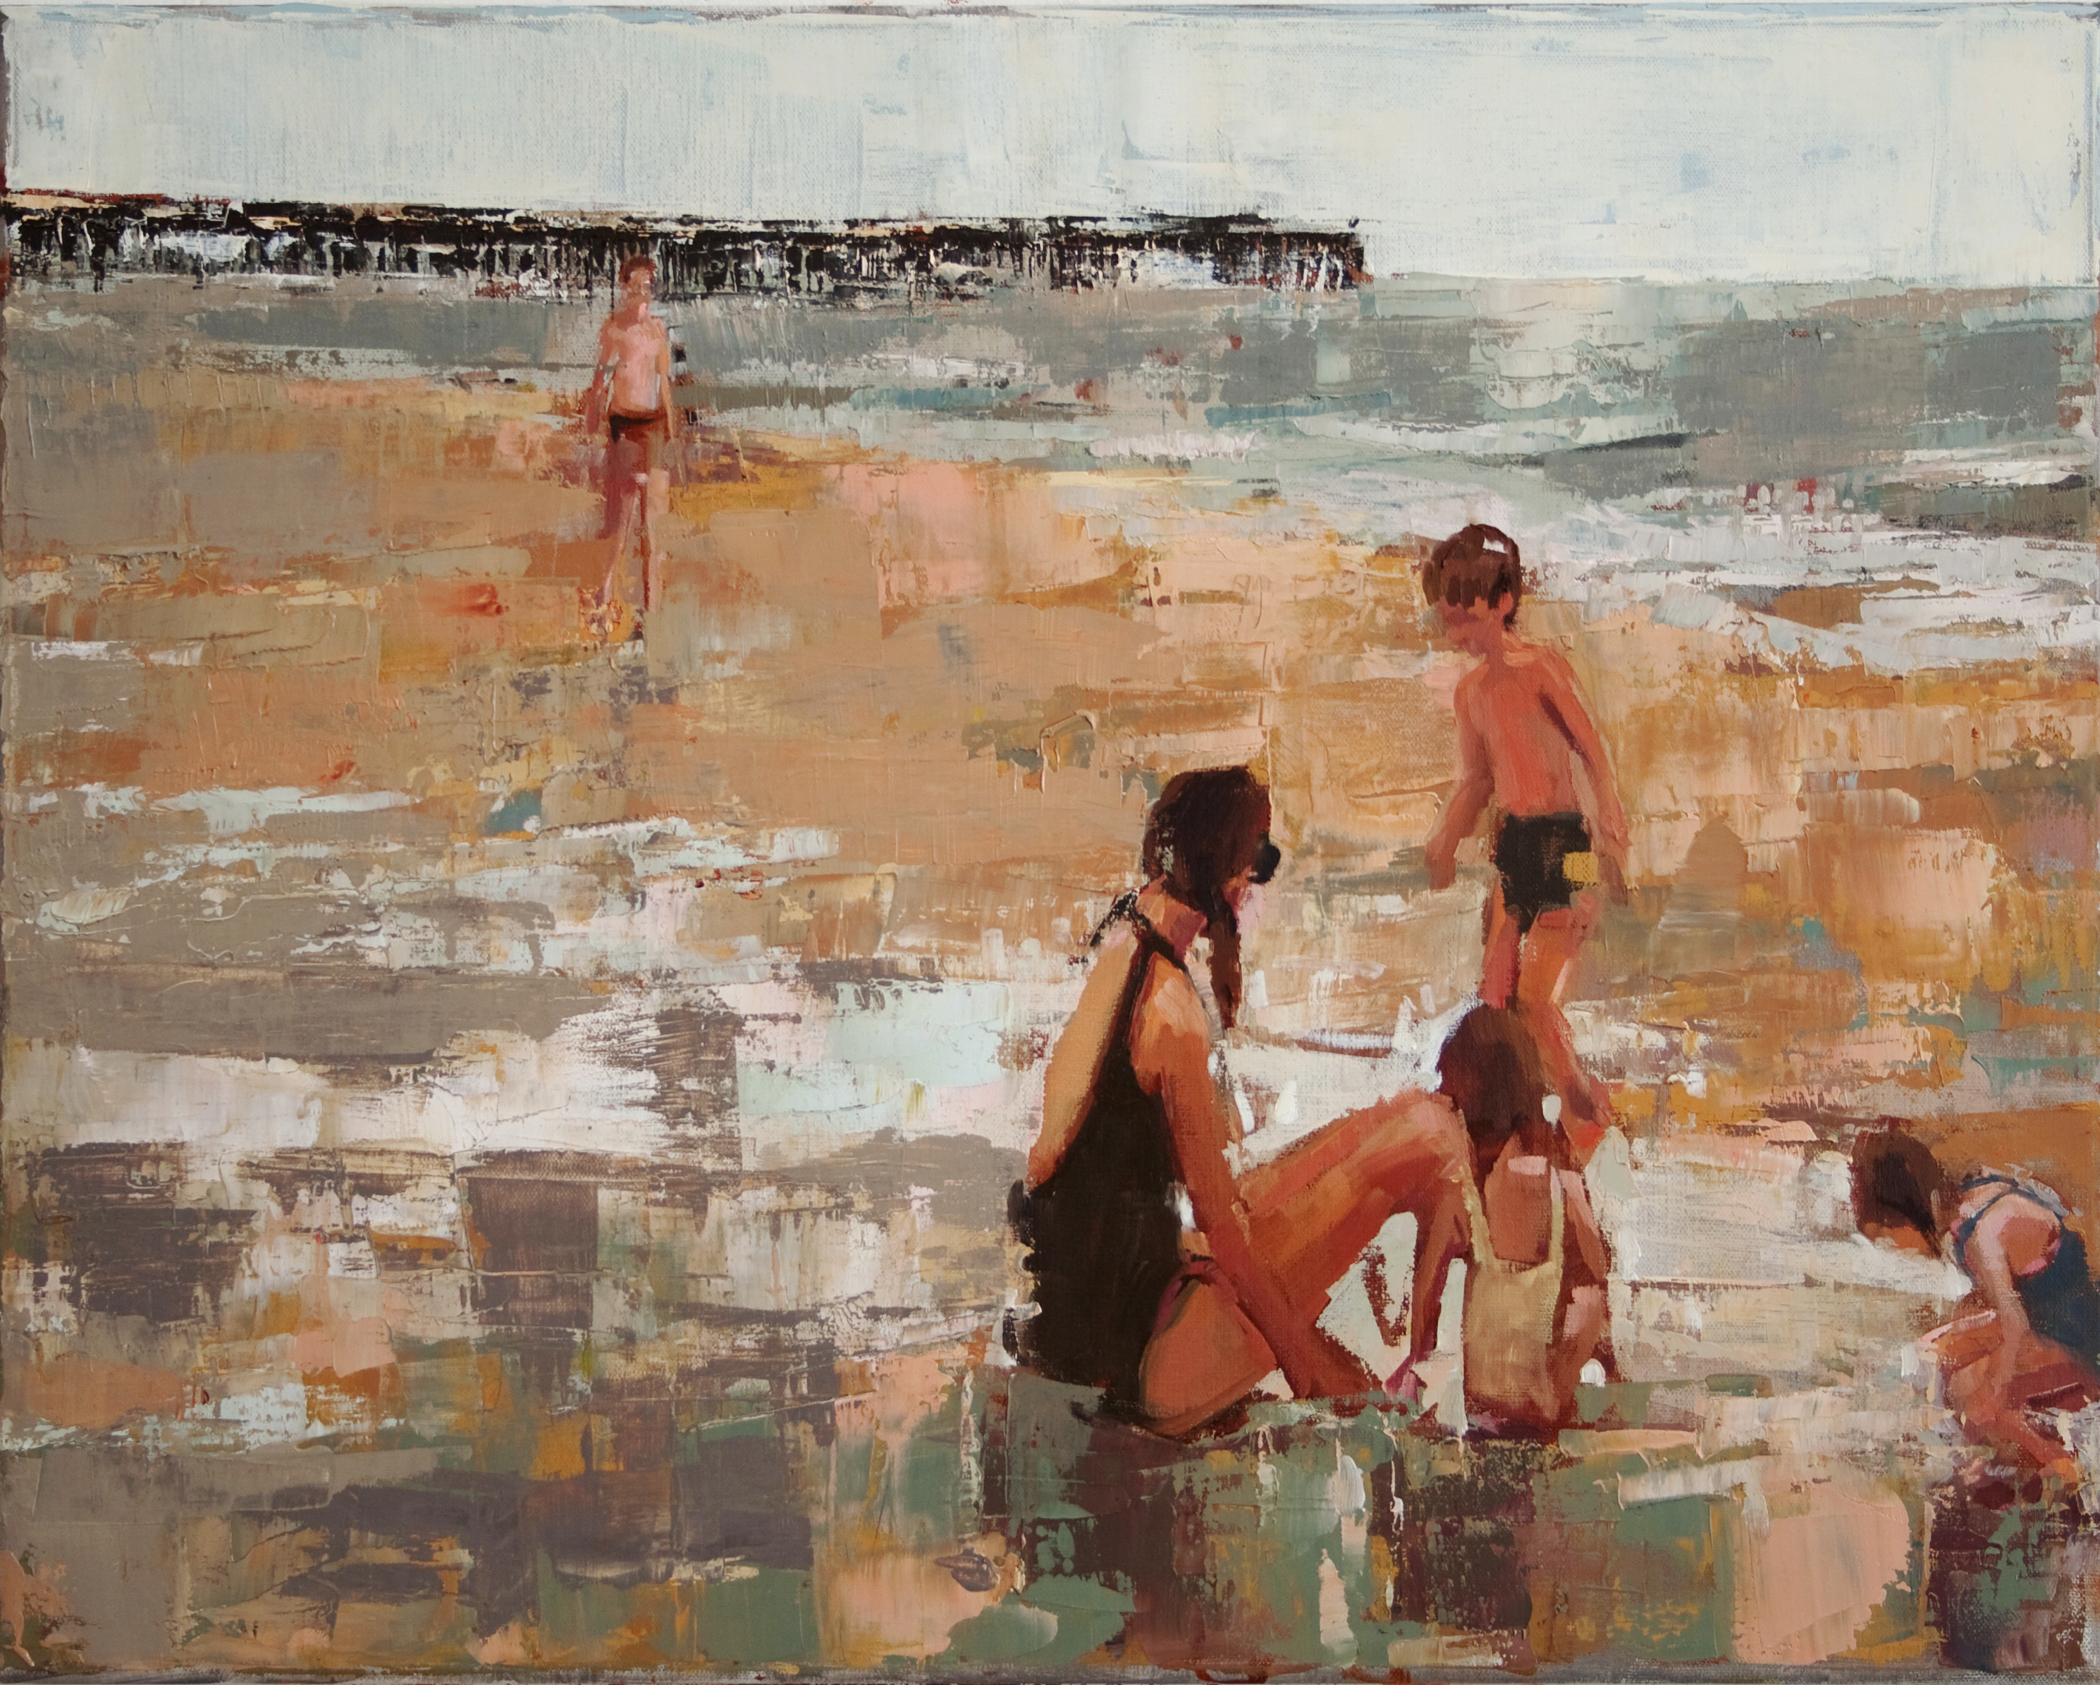 """Cloudy Beach, oil on linen, 16"""" x 20"""", 2010, Private Collection"""